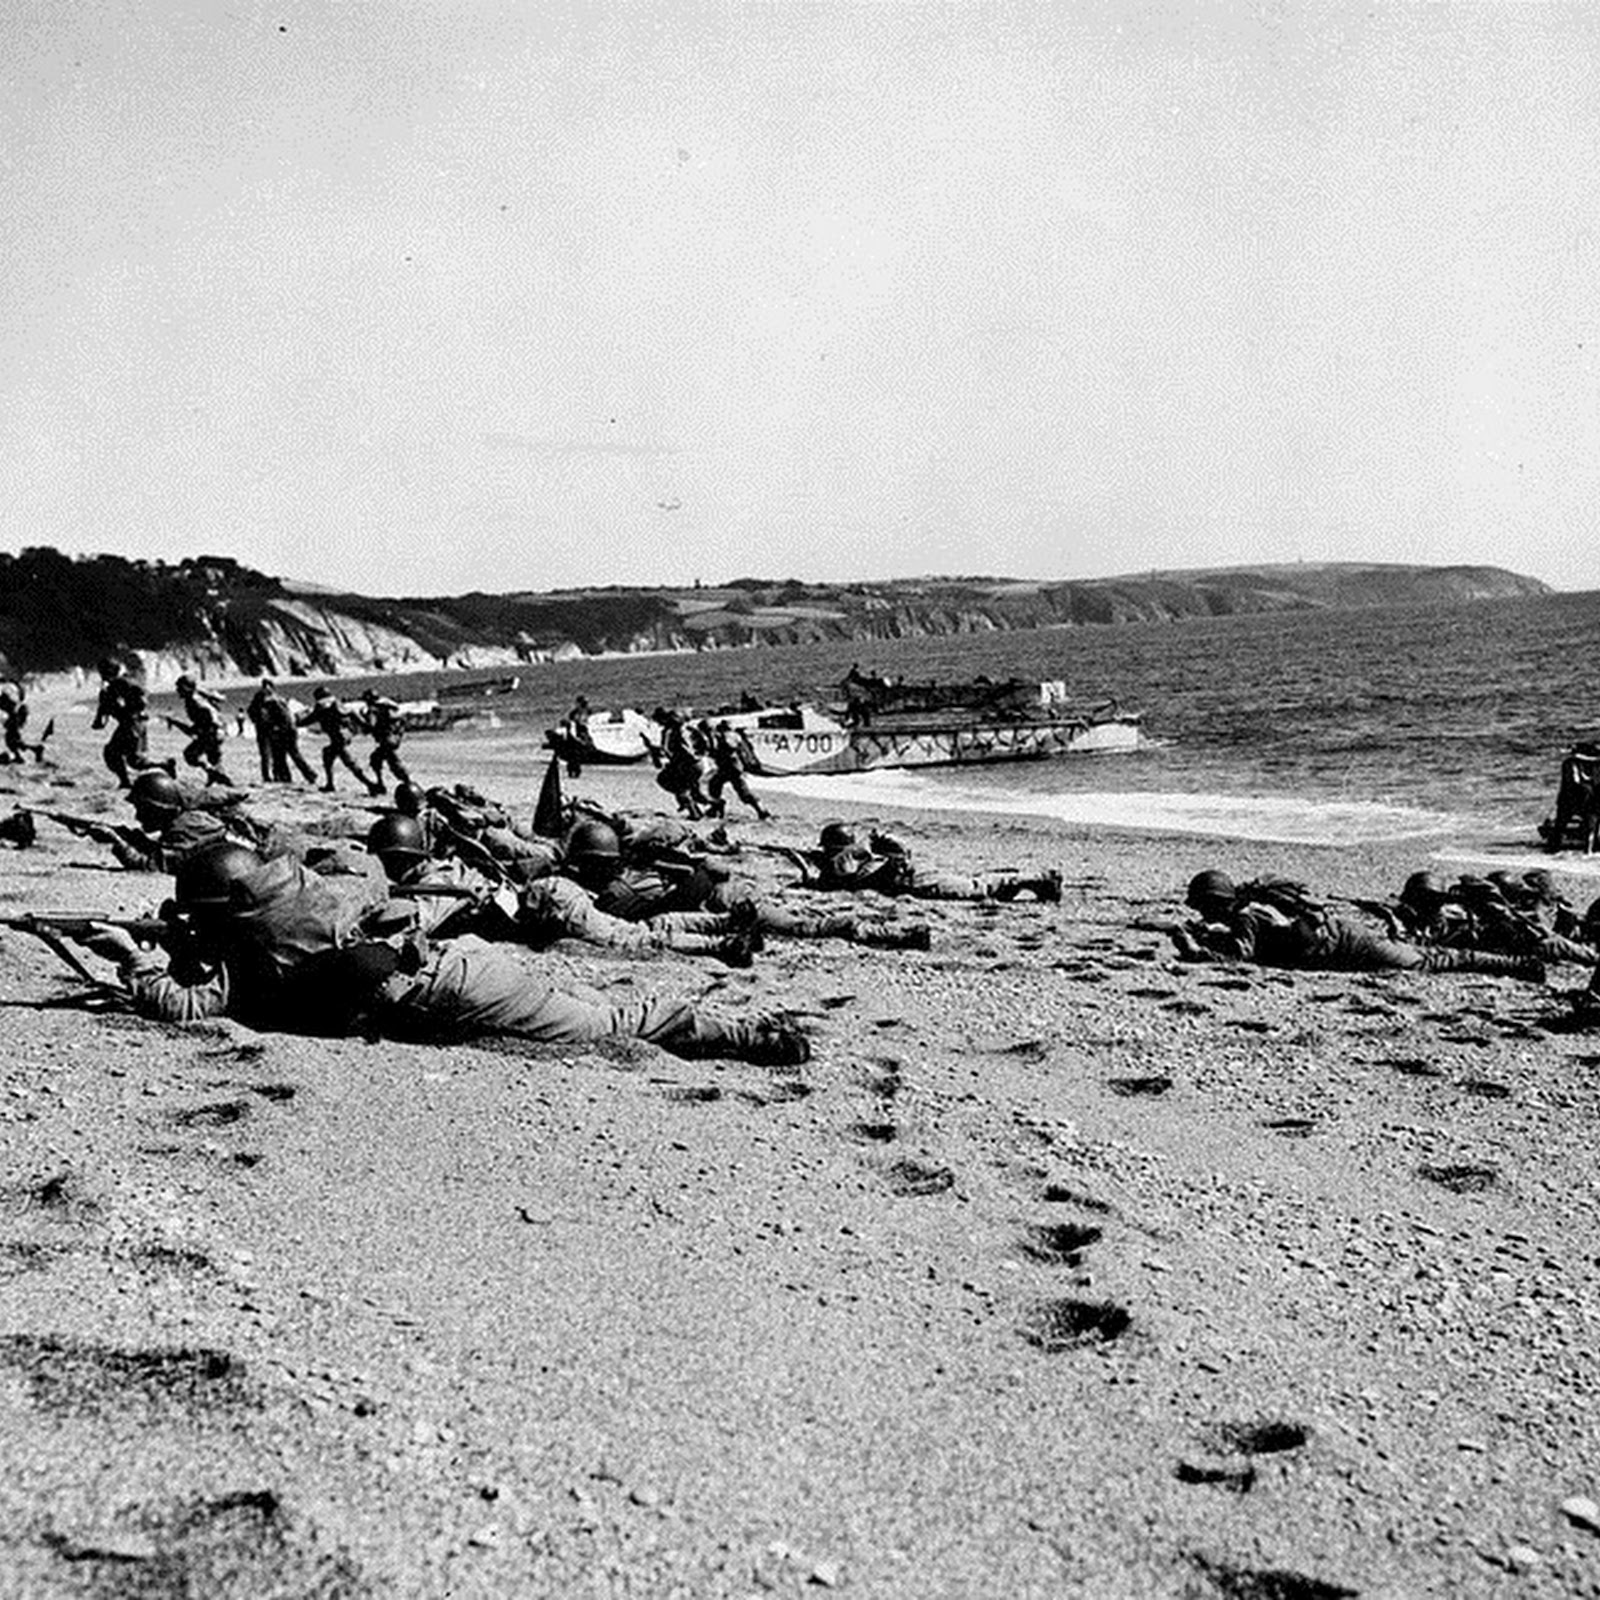 Exercise Tiger: The Disastrous D-Day Rehearsal That Cost 800 Lives